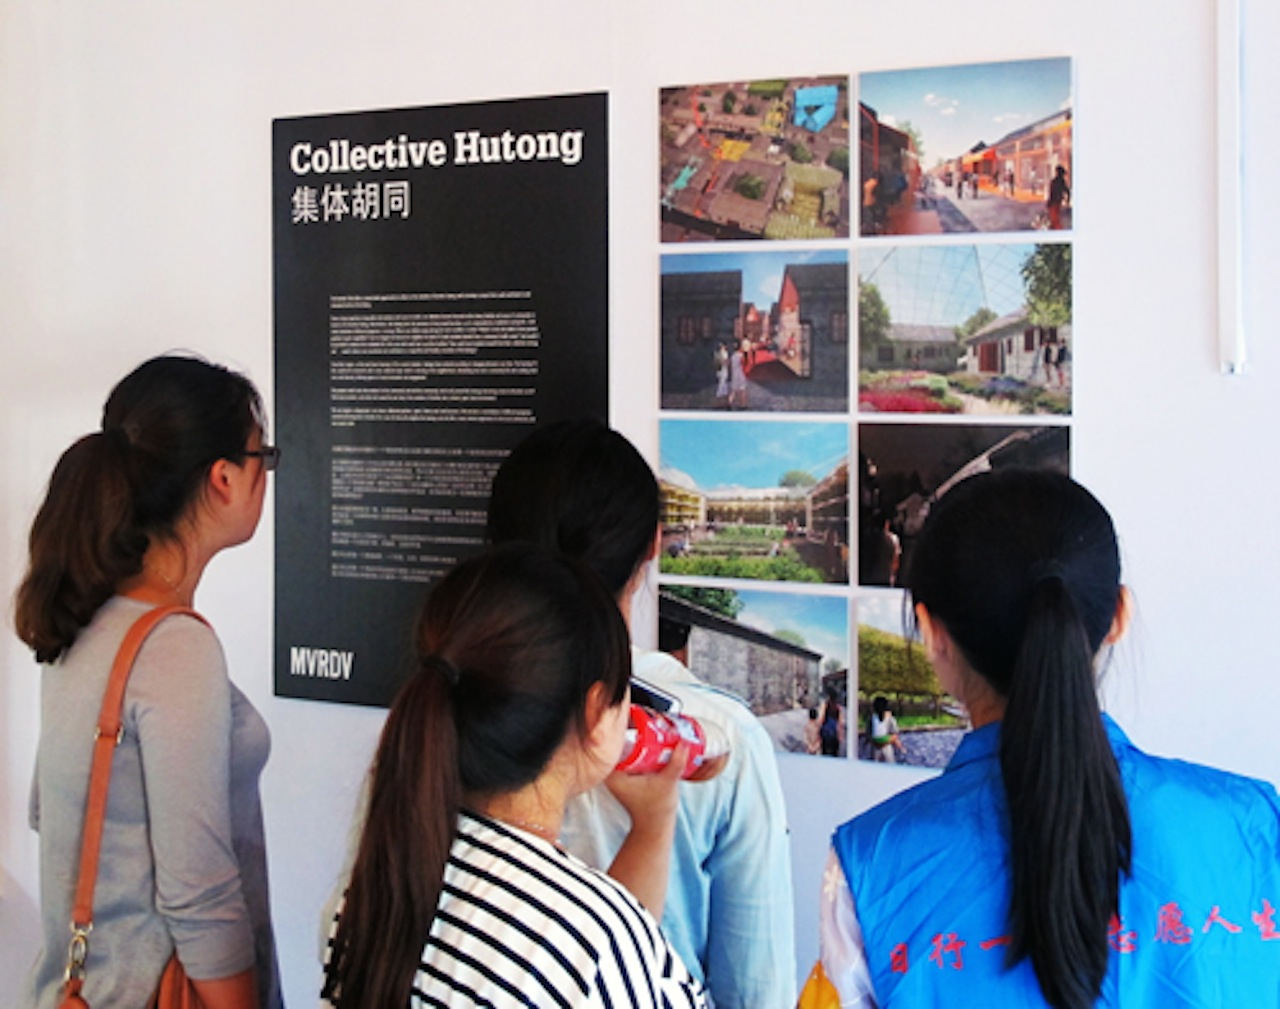 MVRDV's Hutong Research and Interventions Shown at Beijing Design Week 2015